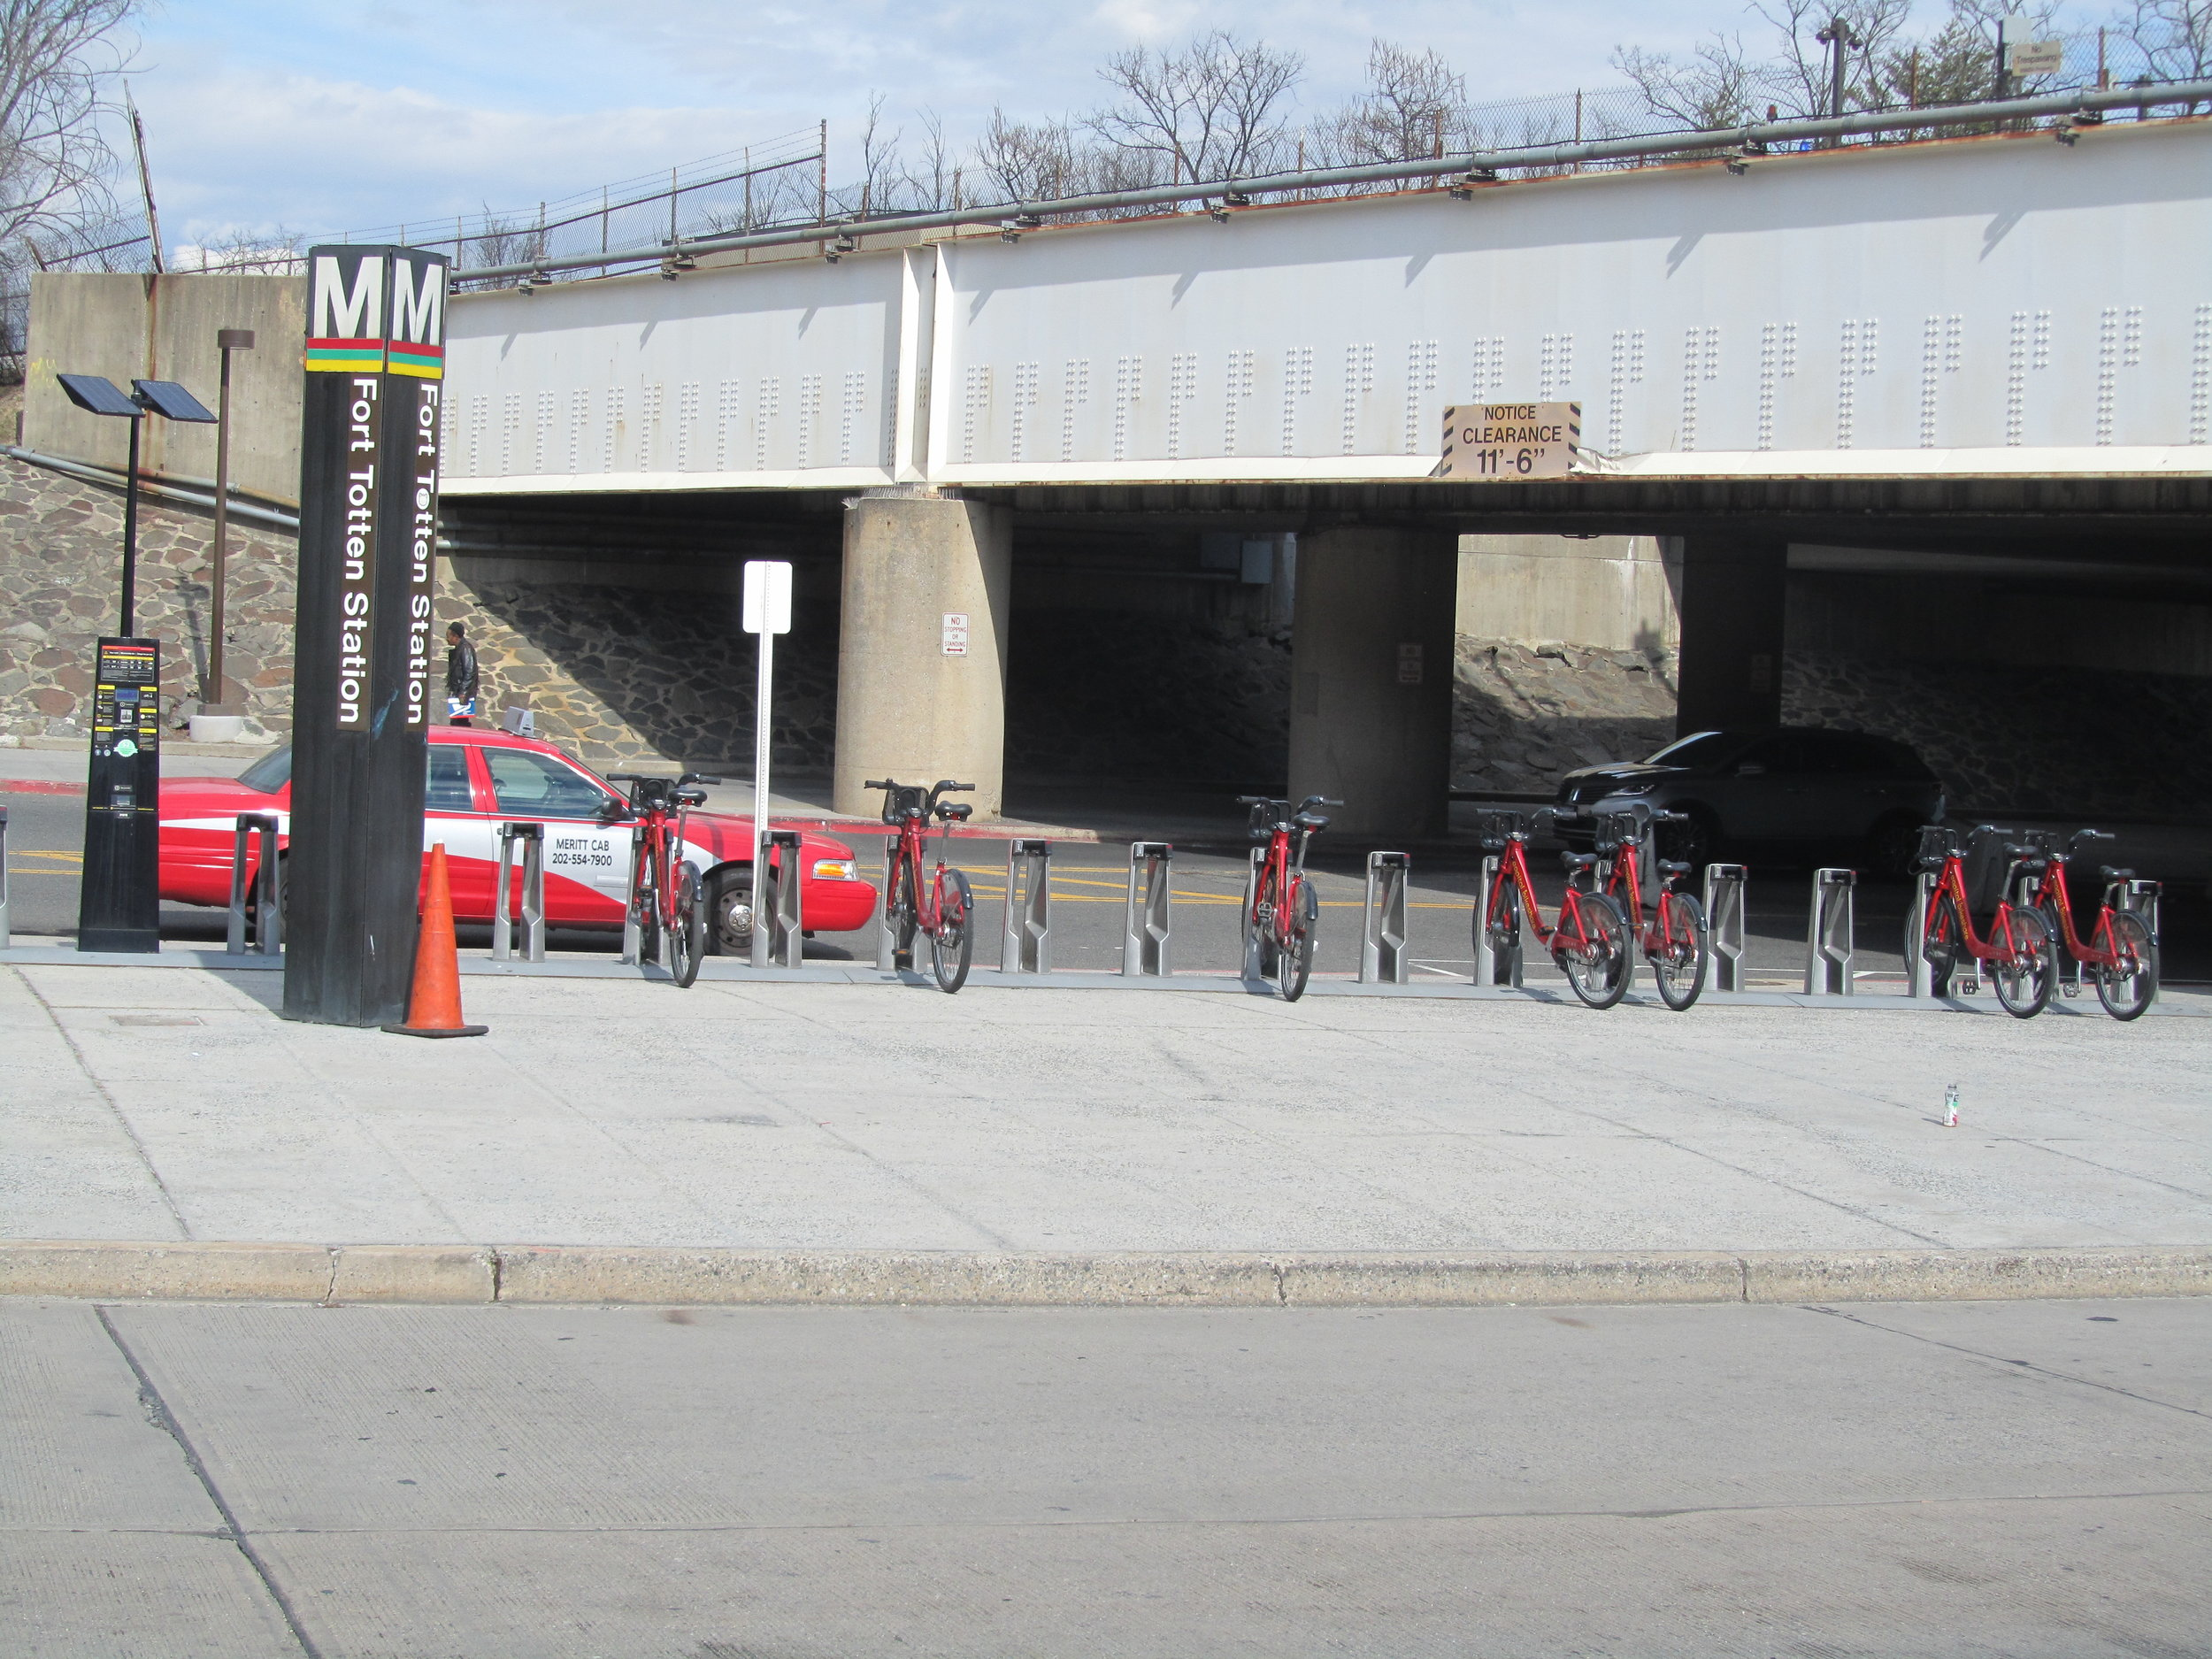 Image of the bikes from the Capital Bikeshare docked at the Fort Totten Metro Station